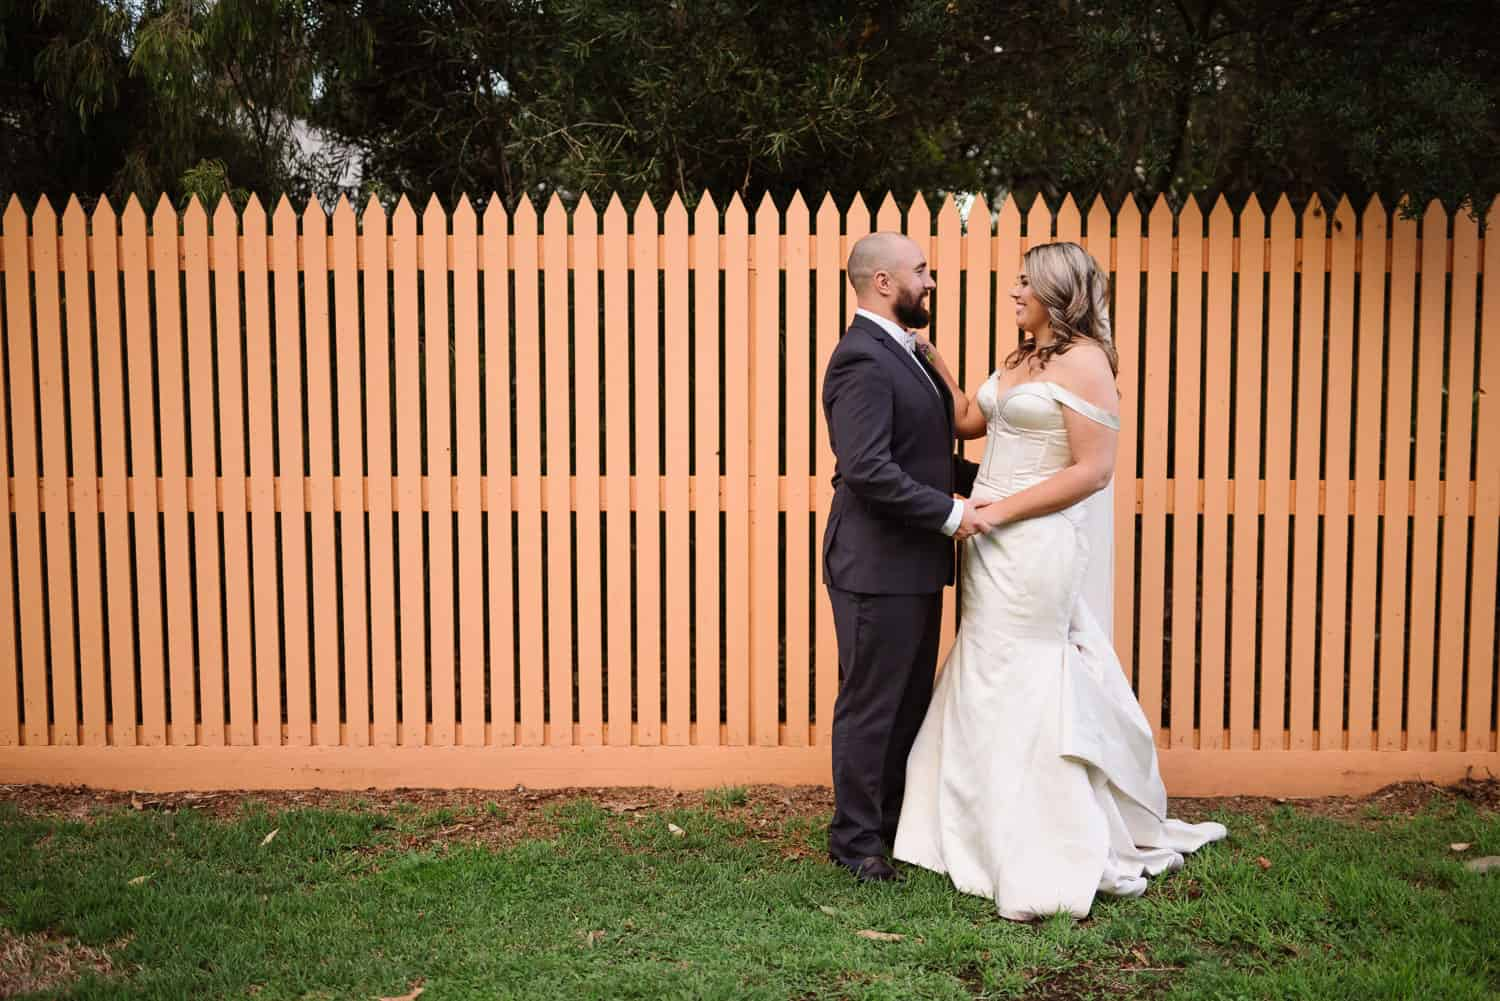 Wedding portrait with an orange fence